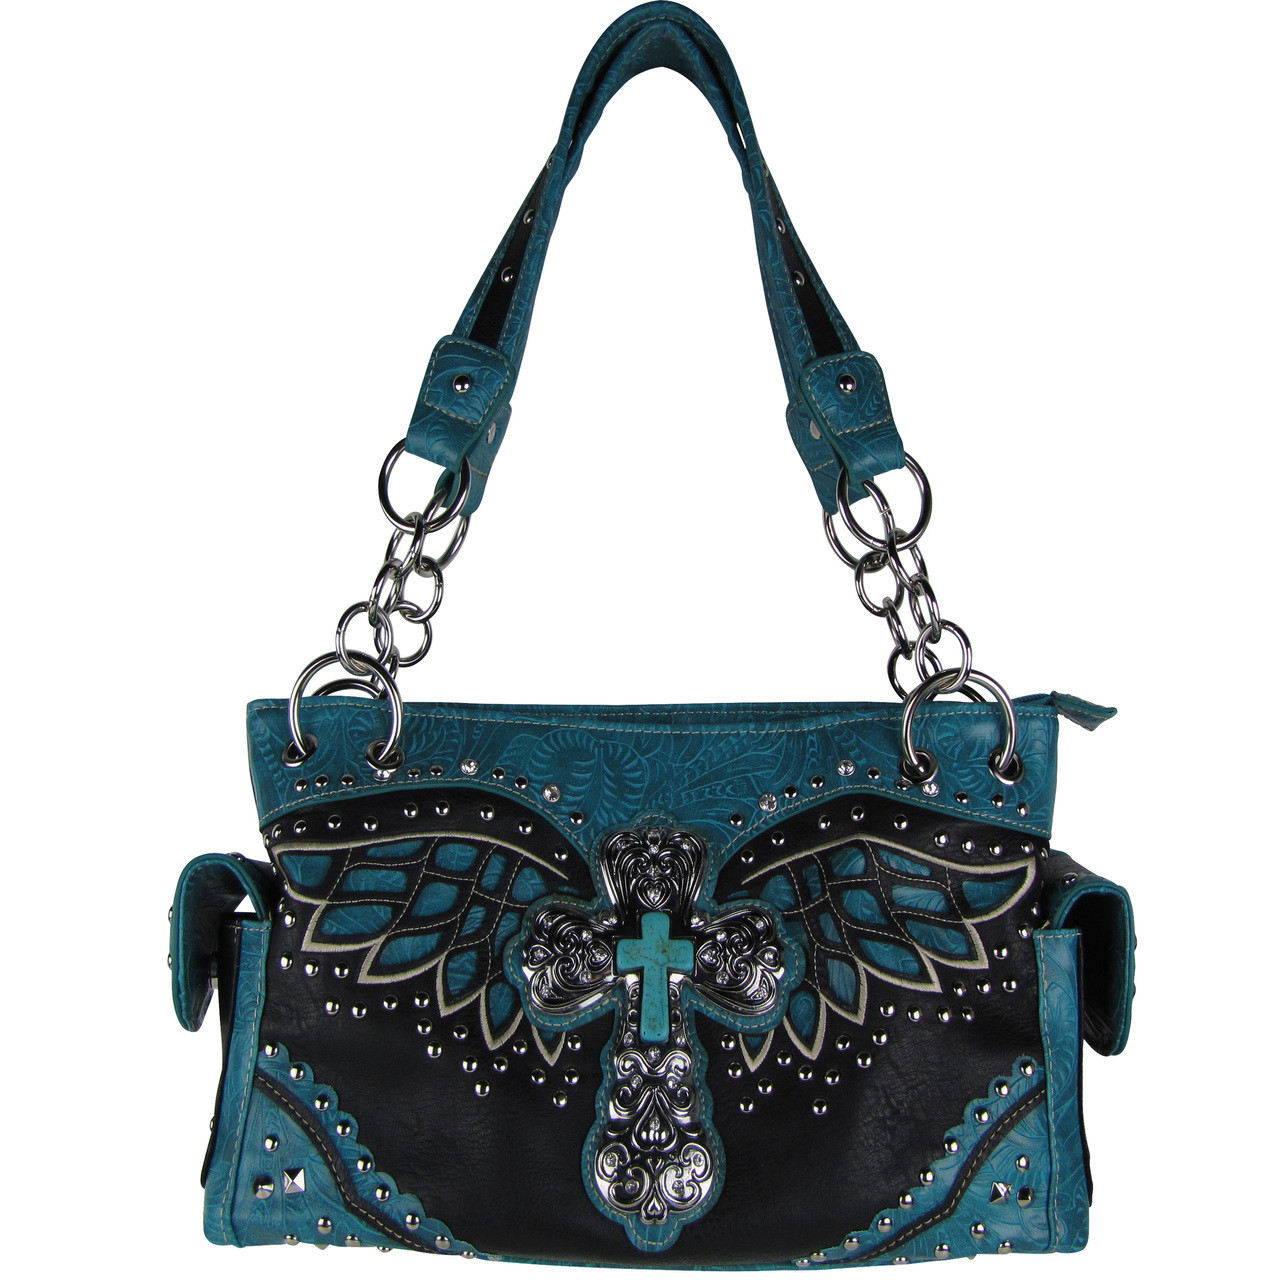 TURQUOISE WESTERN CROSS WITH WINGS LOOK SHOULDER HANDBAG HB1-52LCR-1TRQ